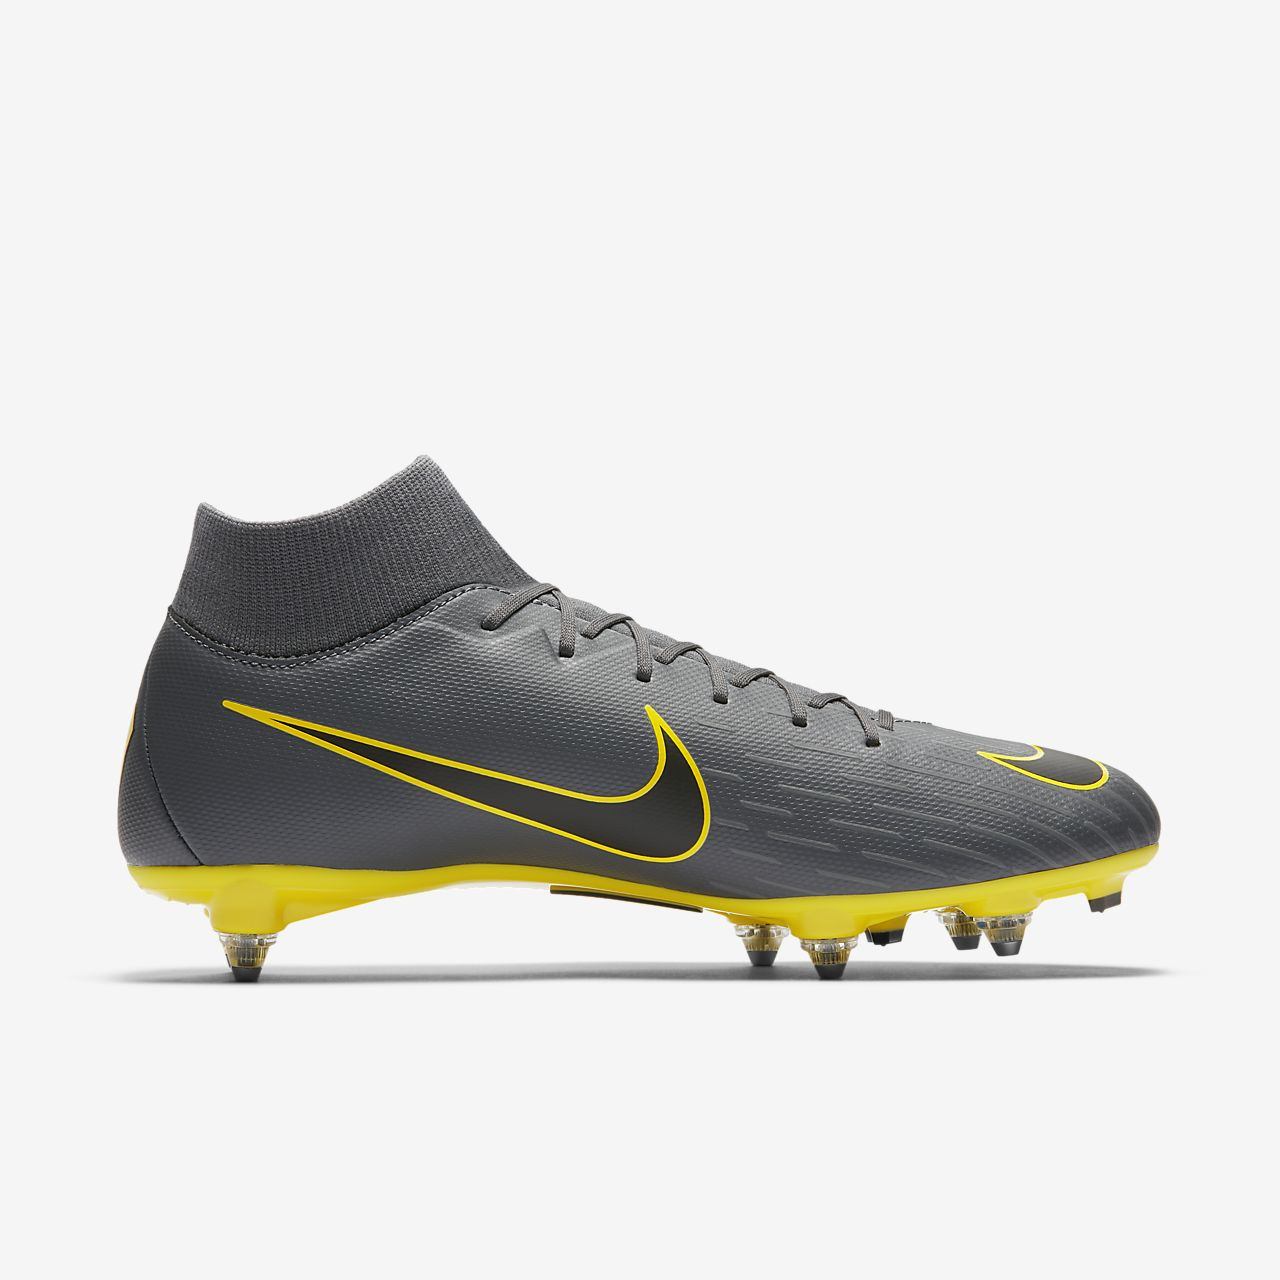 365ba1814d788 ... Nike Mercurial Superfly VI Academy SG-PRO Soft-Ground Football Boot